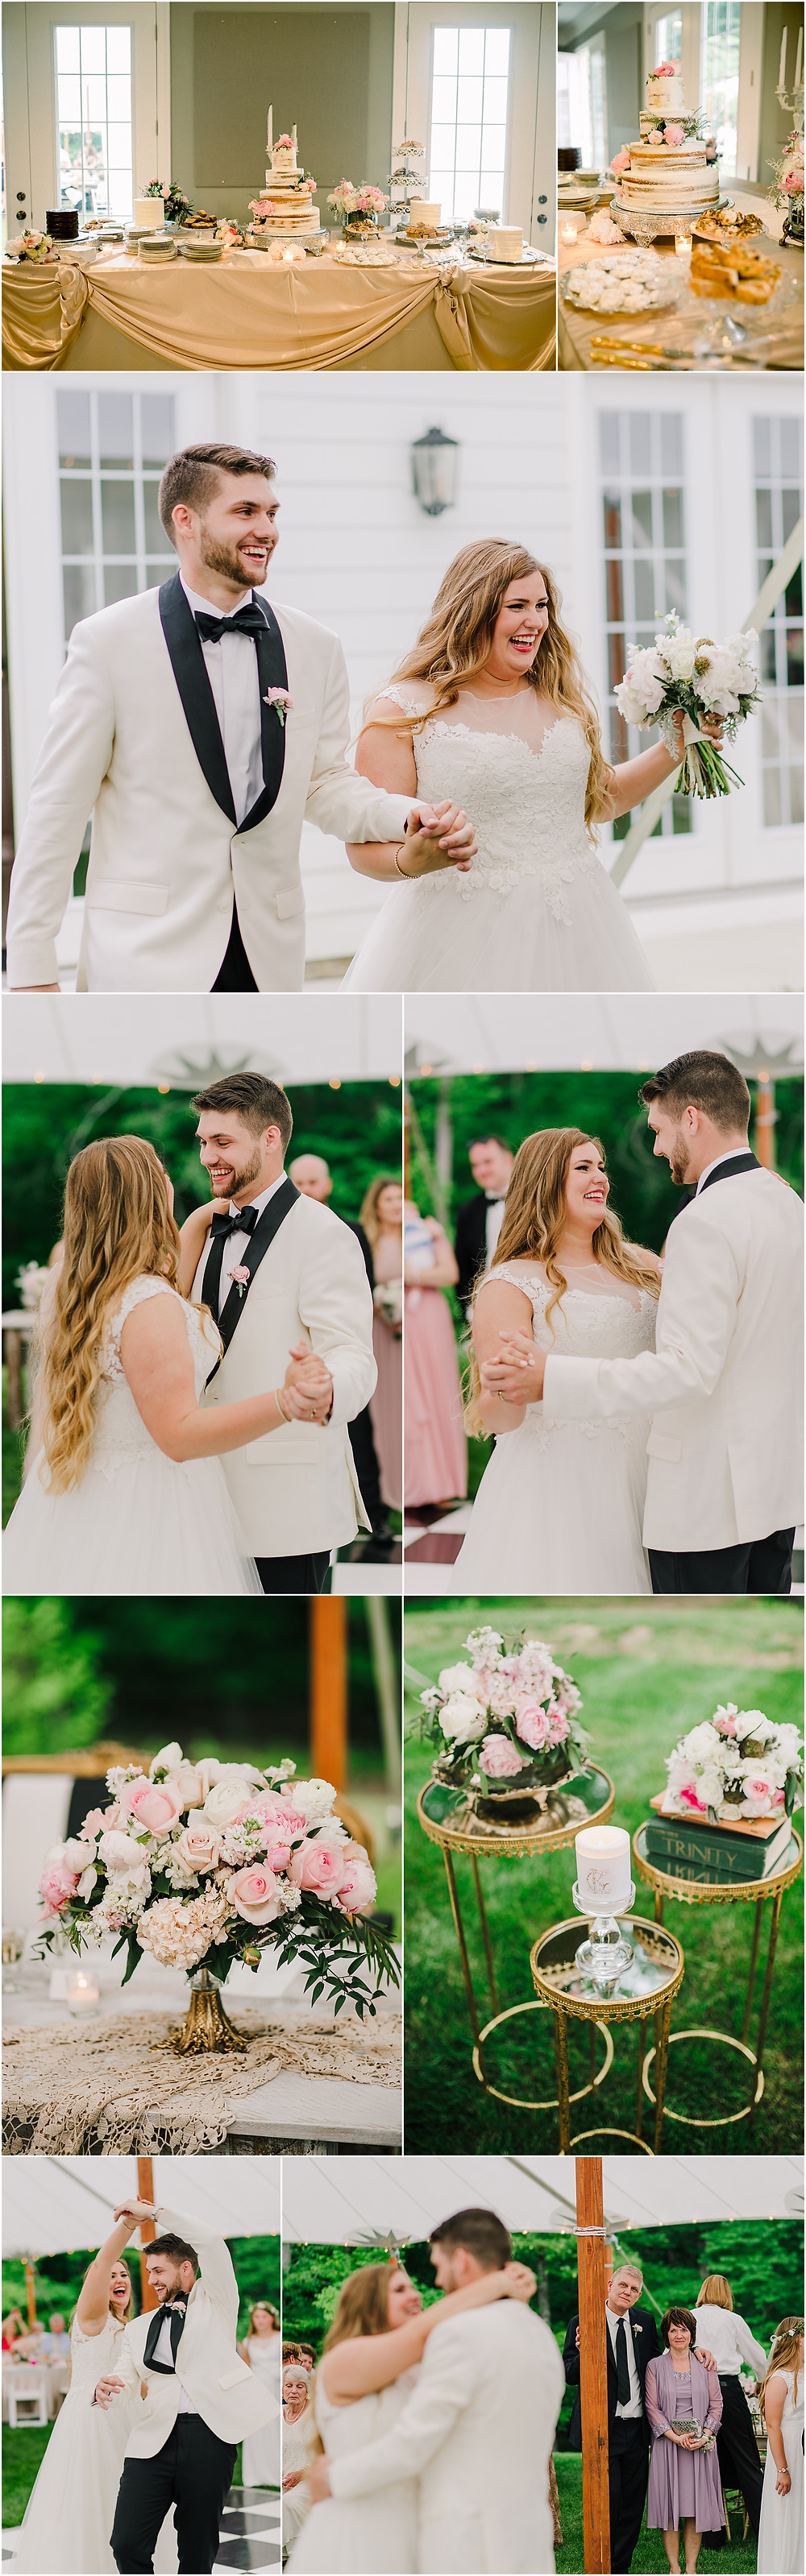 Reception Details and First Dance Memorial Day Wedding in Annapolis, Maryland